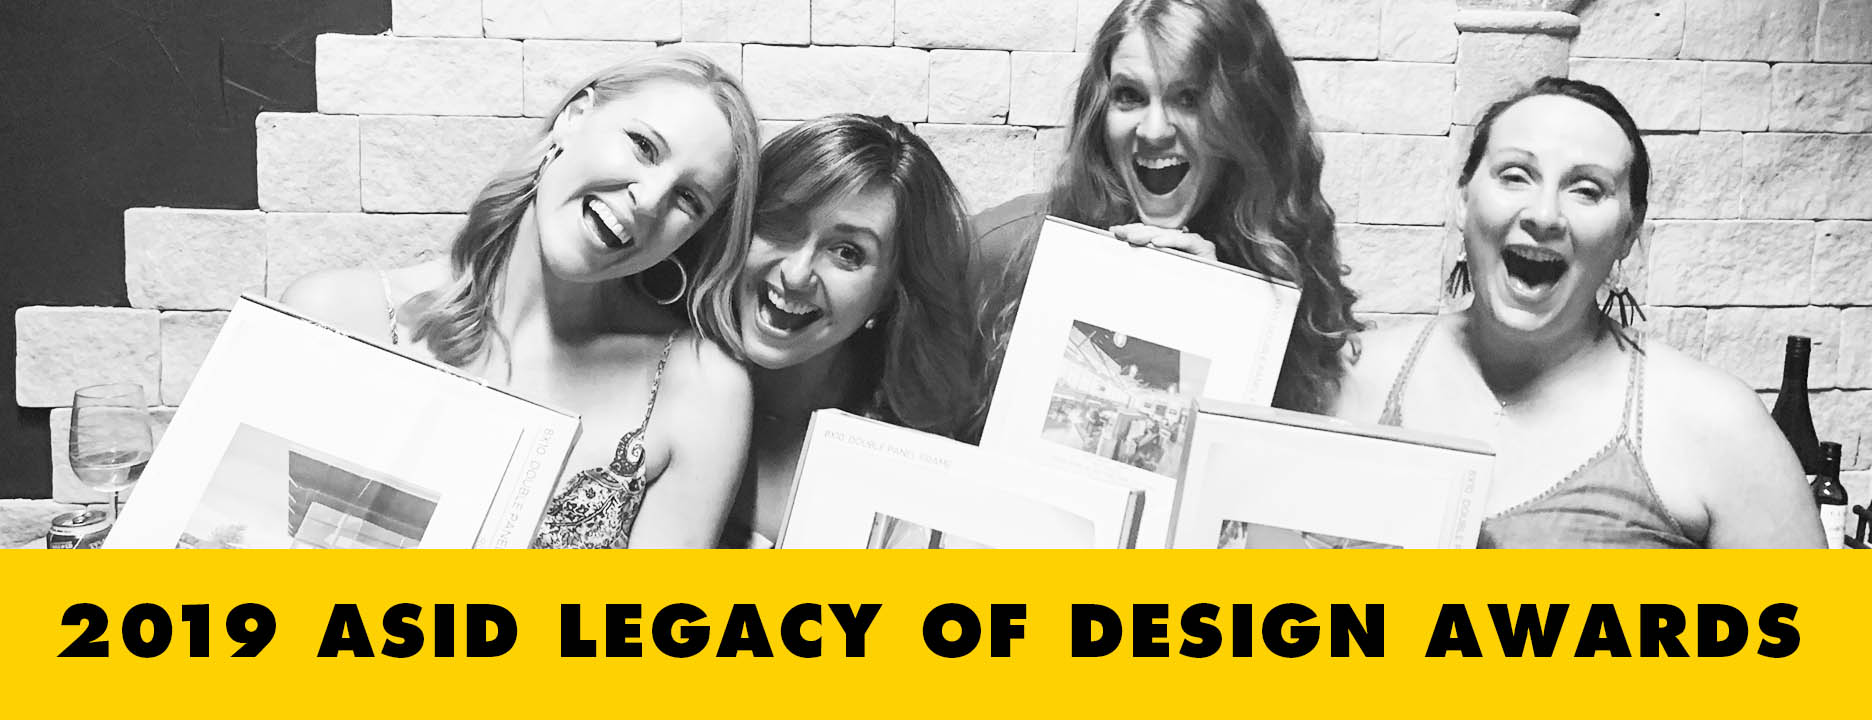 2019 ASID Legacy of Design Awards